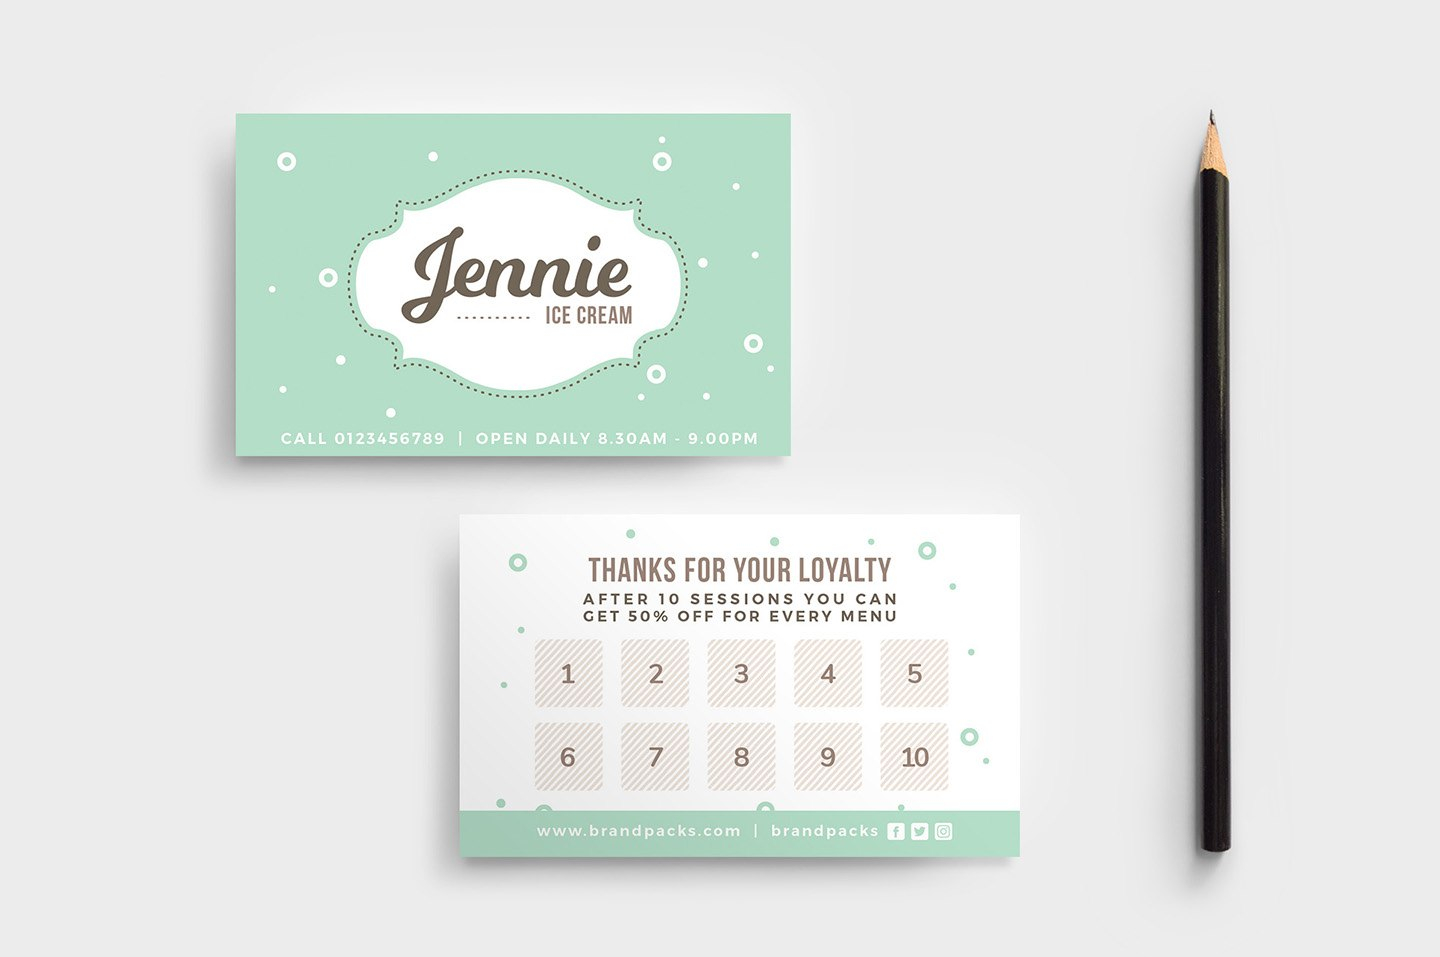 Free Loyalty Card Templates  Psd Ai  Vector  Brandpacks Within Loyalty Card Design Template